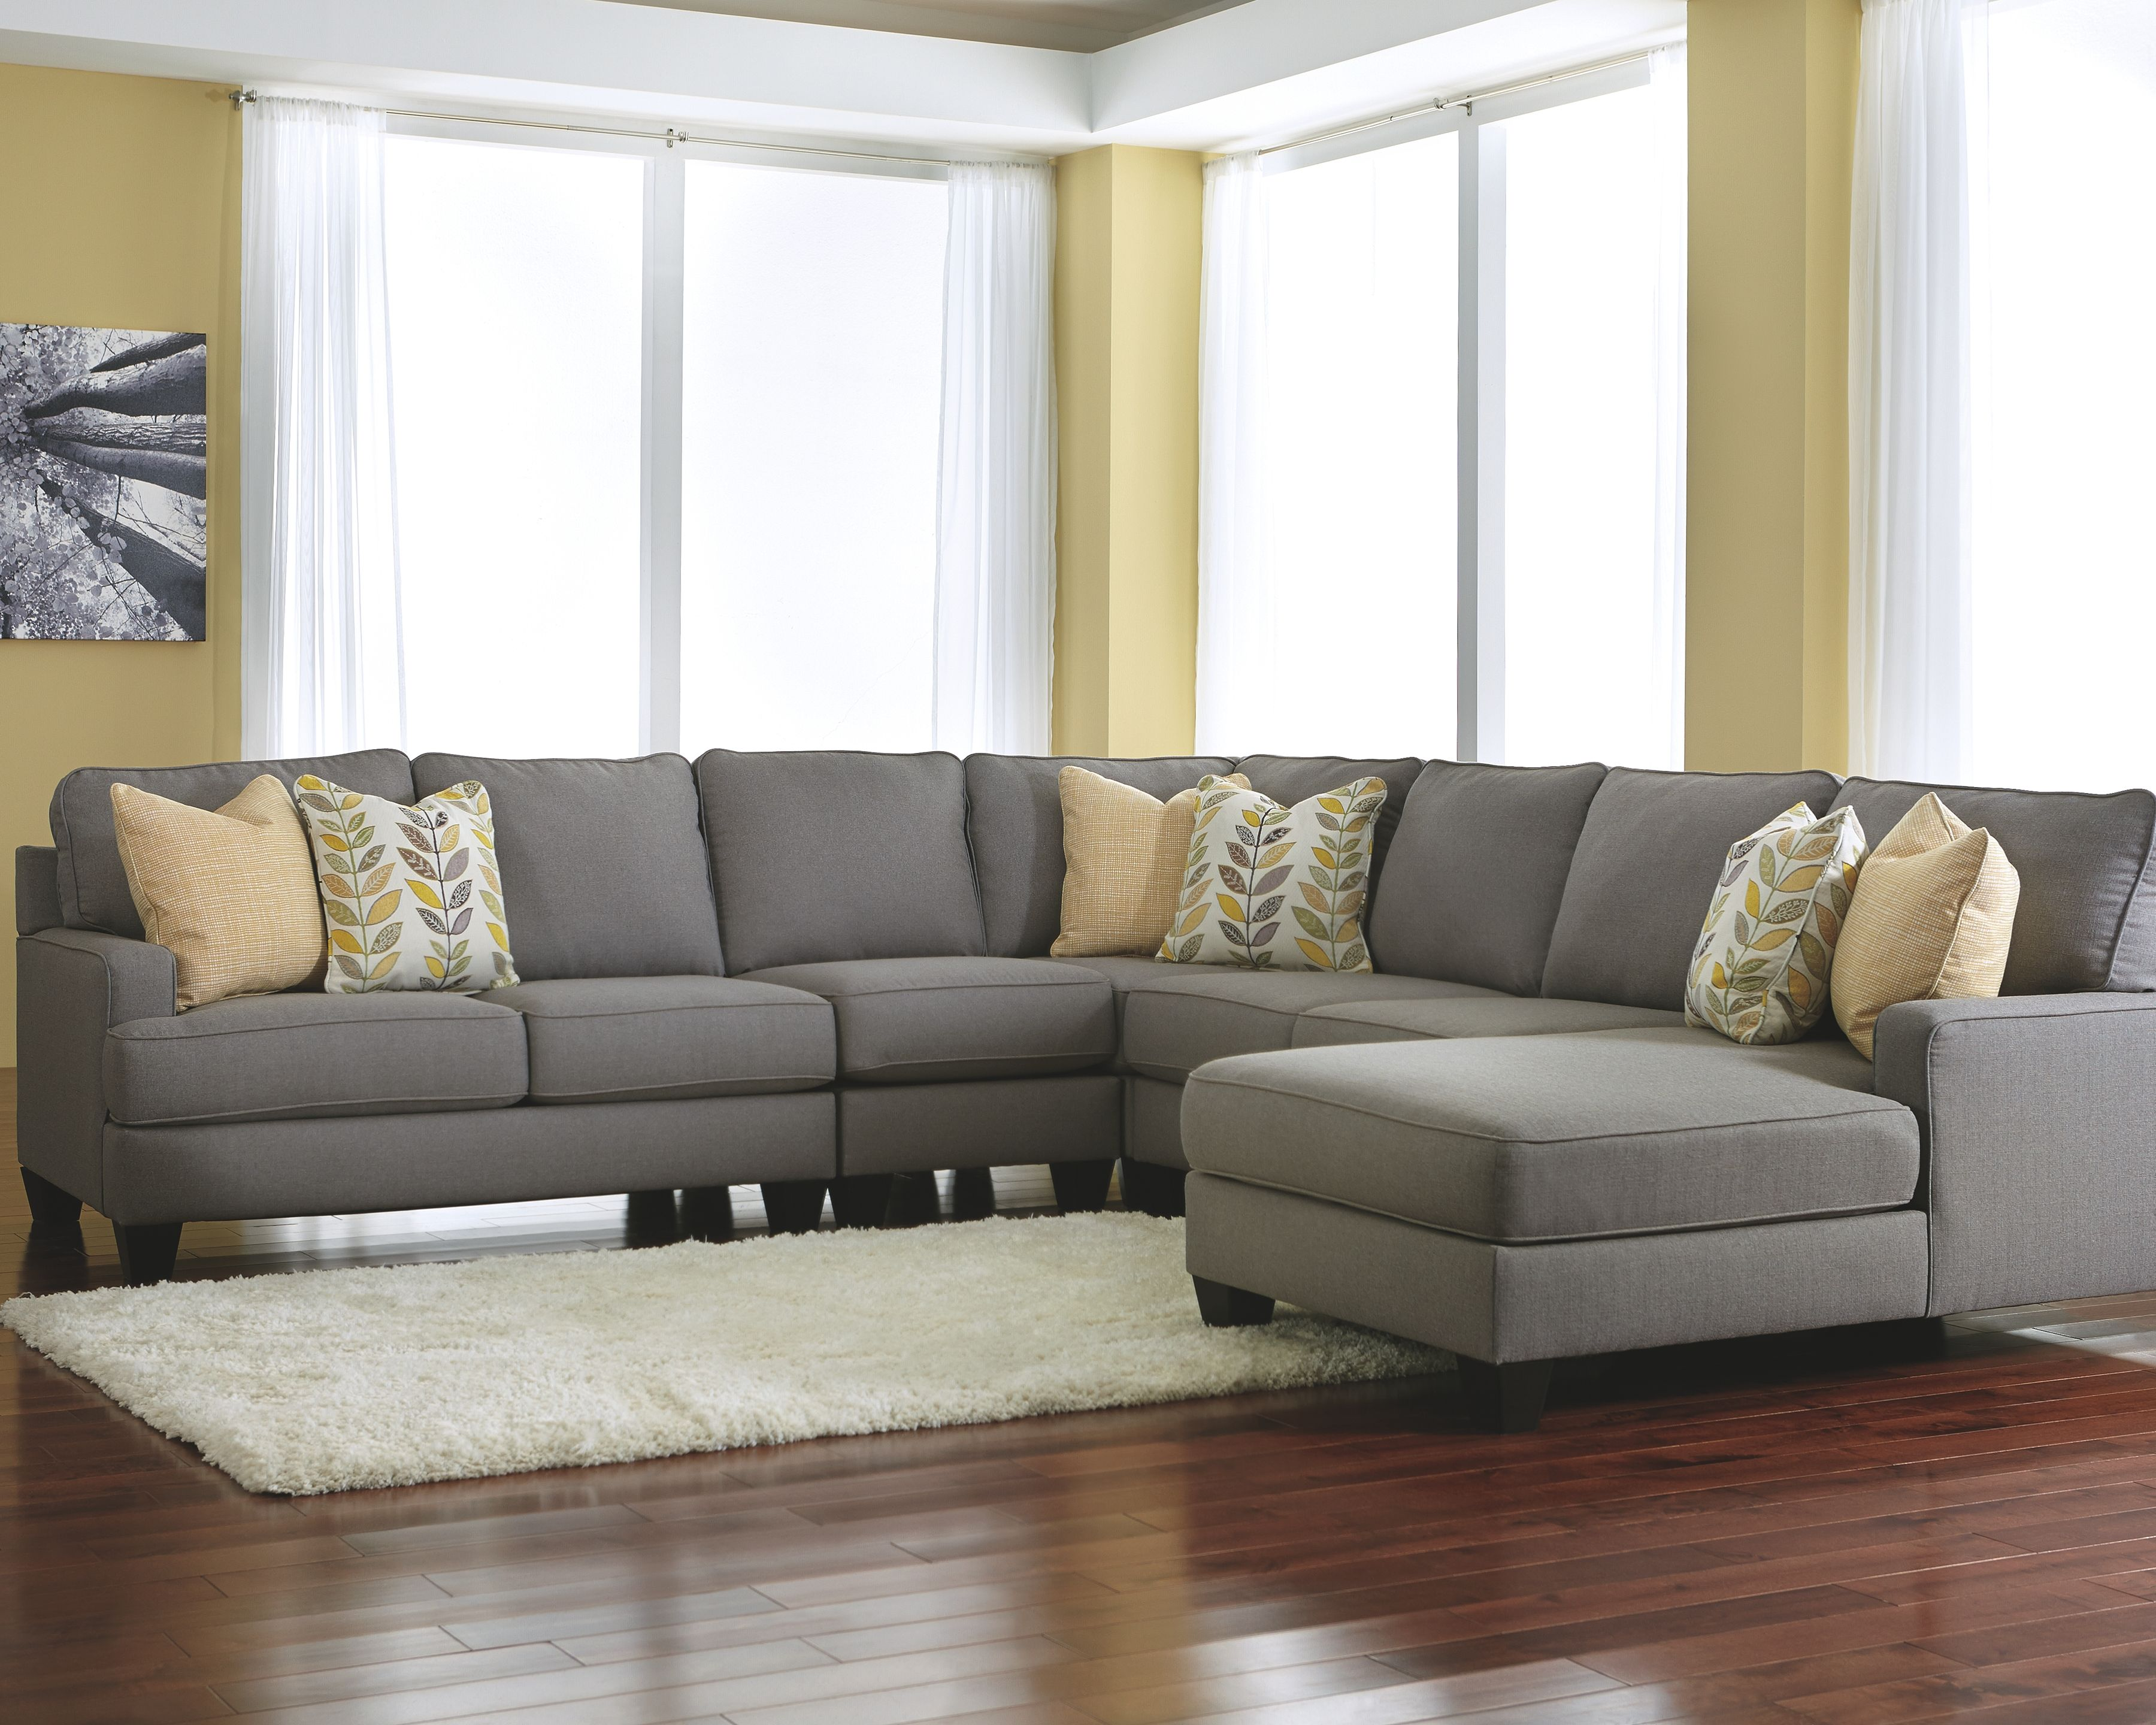 Best Chamberly 5 Piece Sectional With Chaise Alloy In 2020 400 x 300